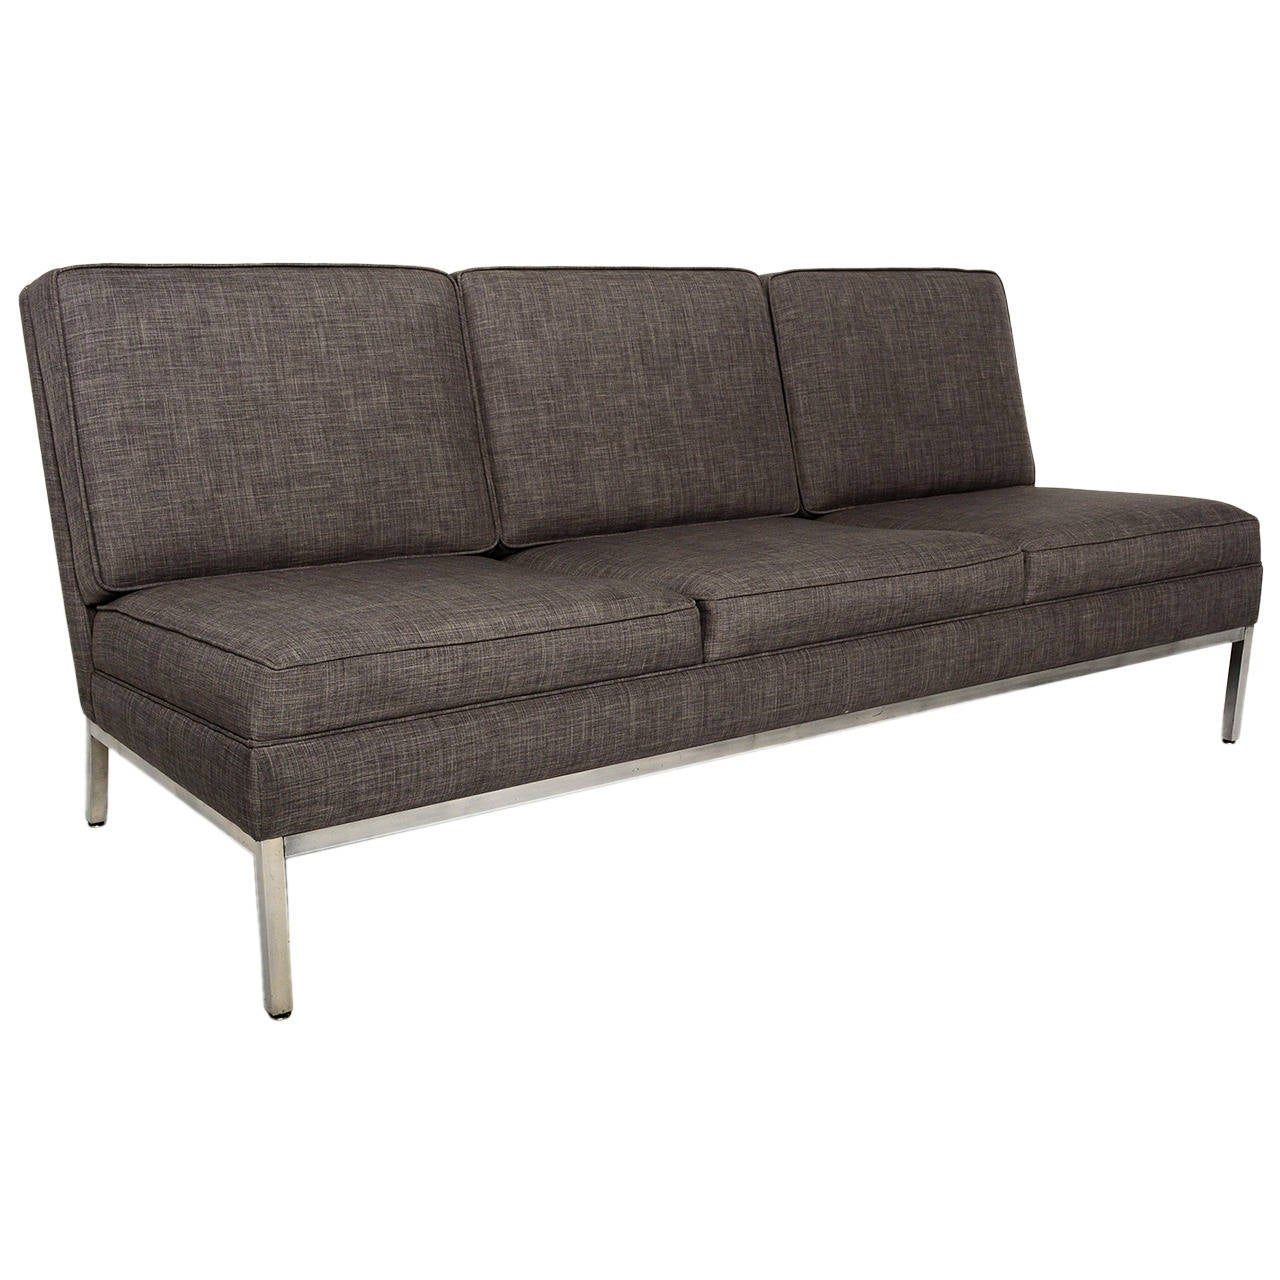 Mid Century Modern Steelcase Three-Seater Sofa